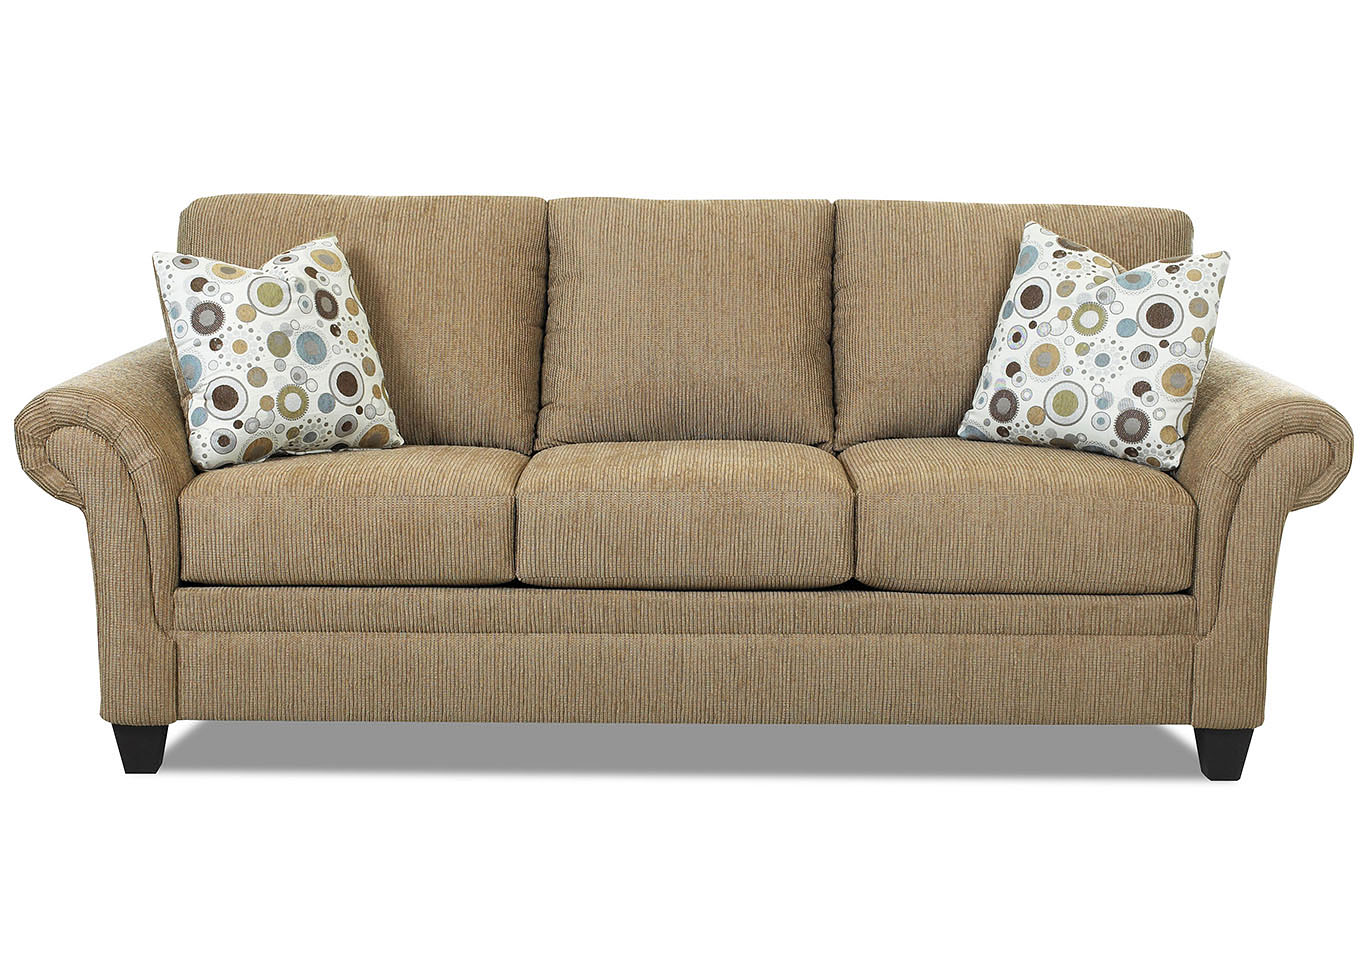 Hubbard Mocha Stationary Fabric Sofa,Klaussner Home Furnishings